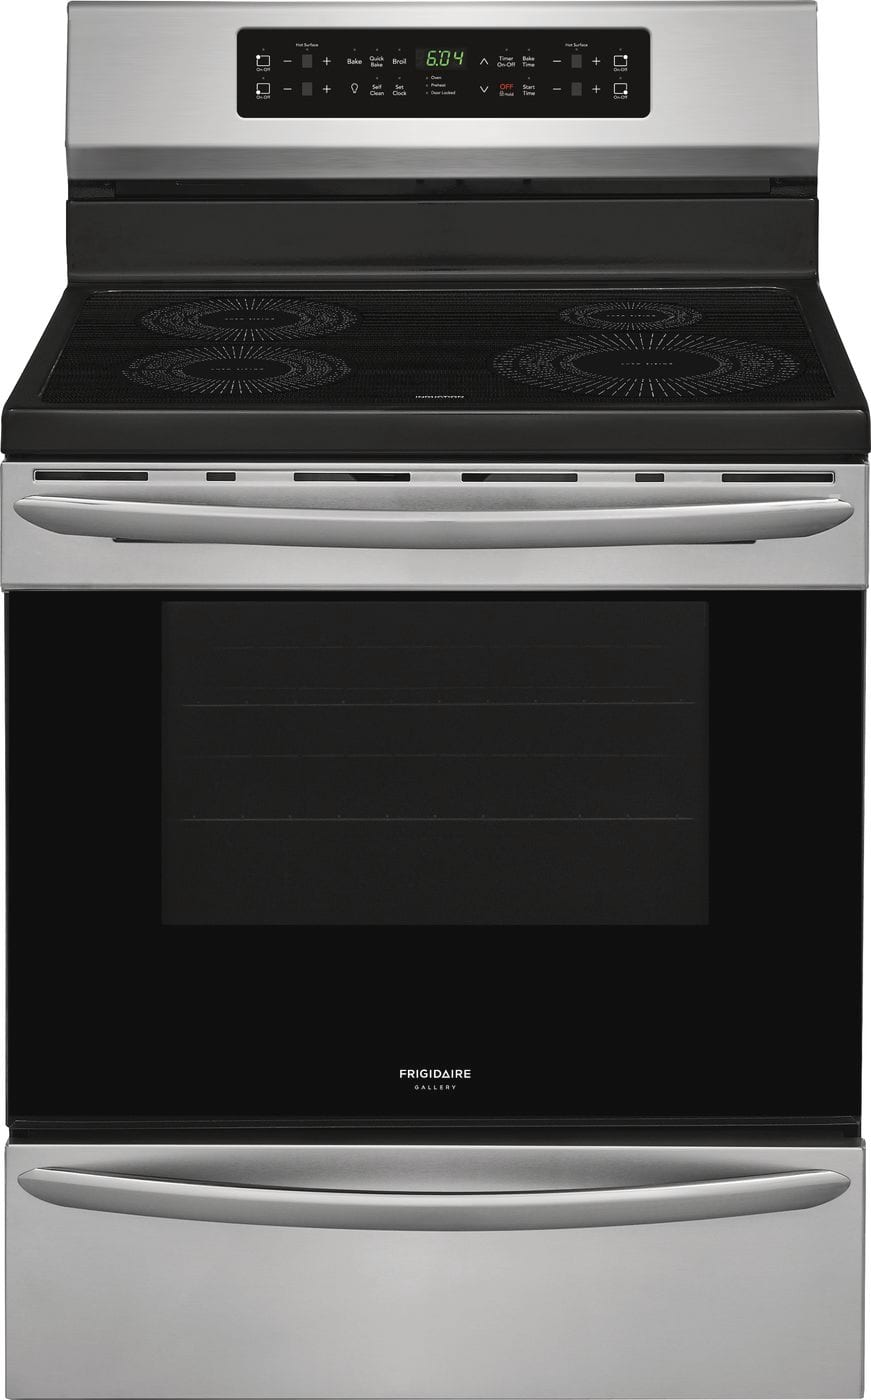 "Frigidaire 30"" Freestanding Induction Range"